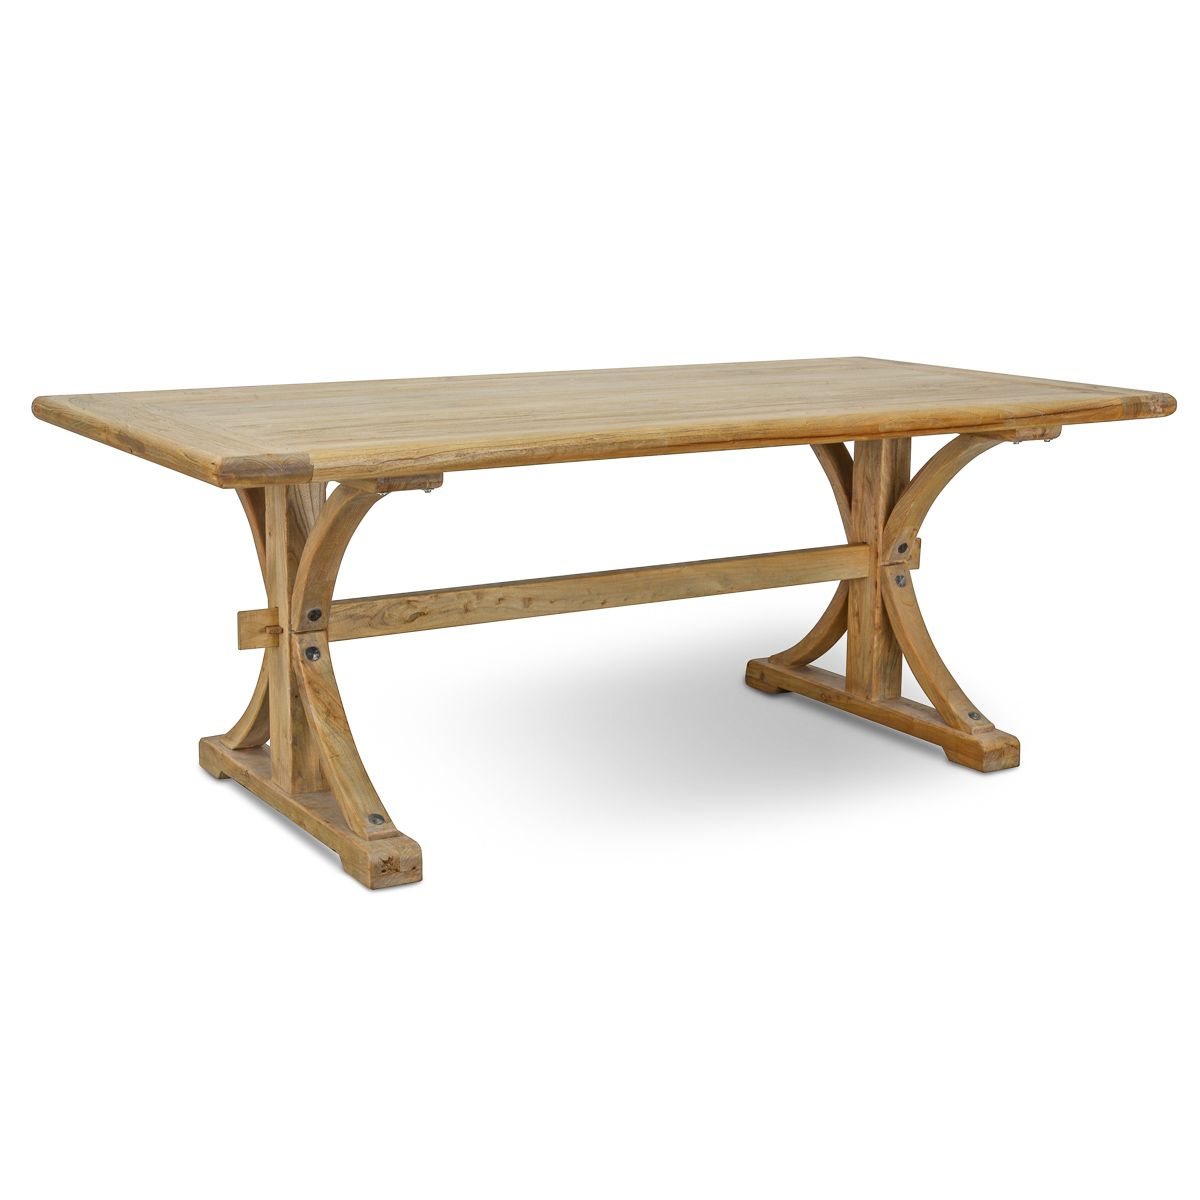 Marcus reclaimed elm wood dining table 1 98m natural 1050 interior secrets